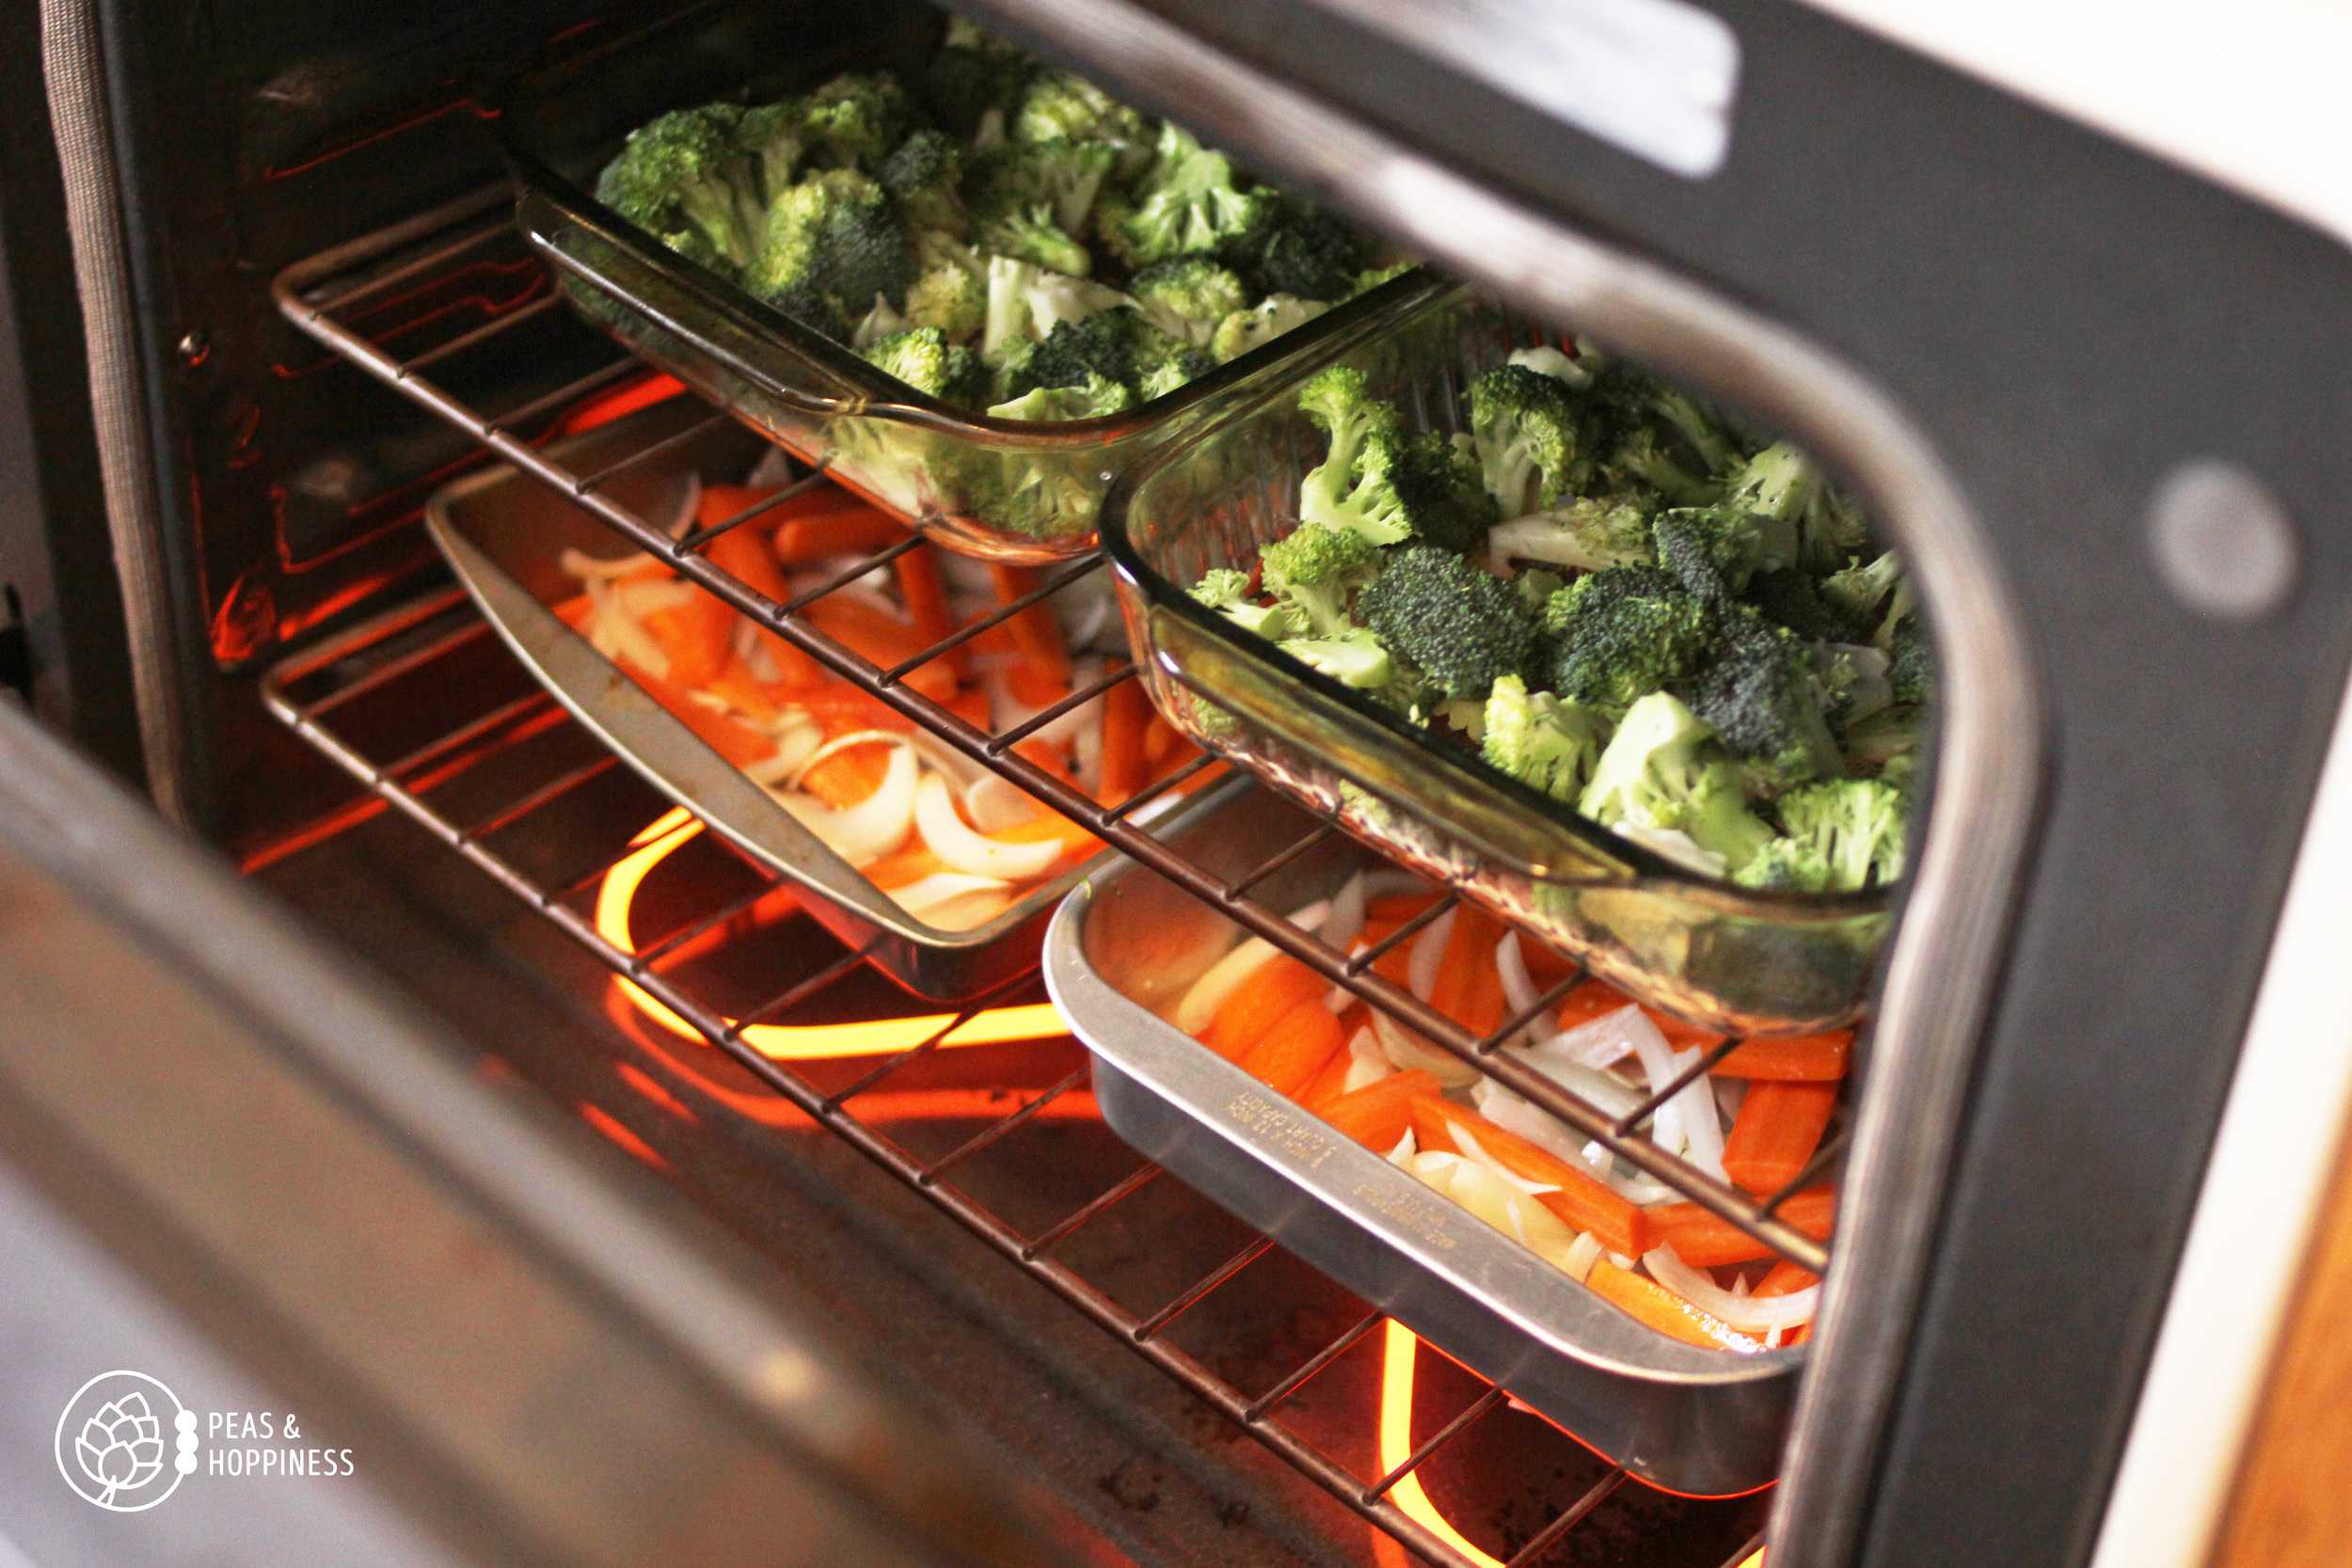 Brown Rice Bowls with Roasted Carrots and Broccoli from Peas and Hoppiness - www.peasandhoppiness.com